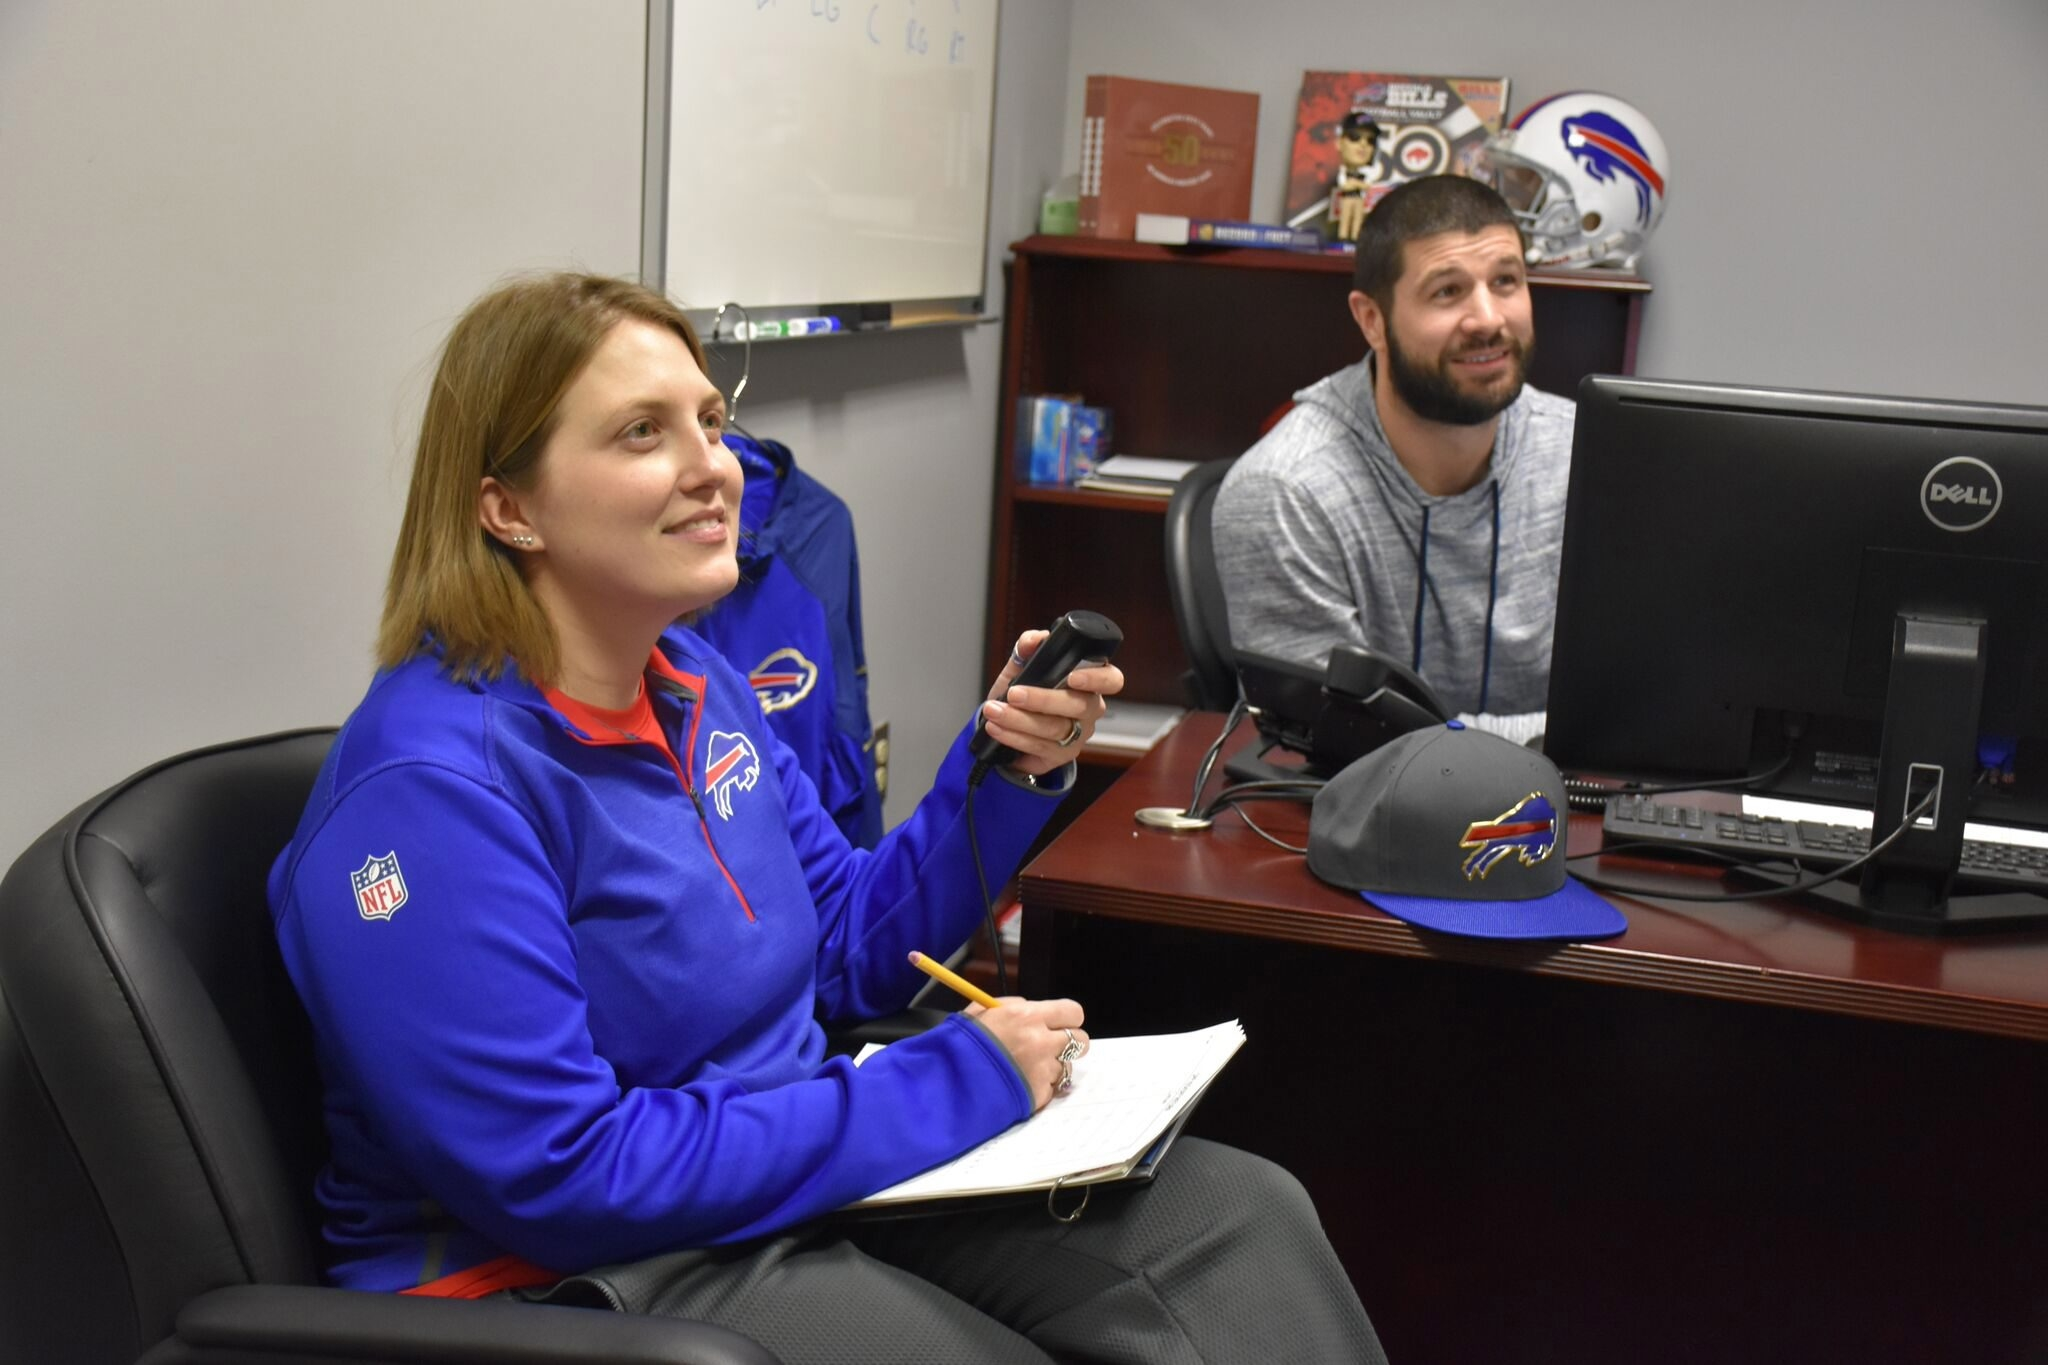 Kathryn Smith, left, was hired by the Bills as an assistant coach, but will there be more women executives in the NFL?